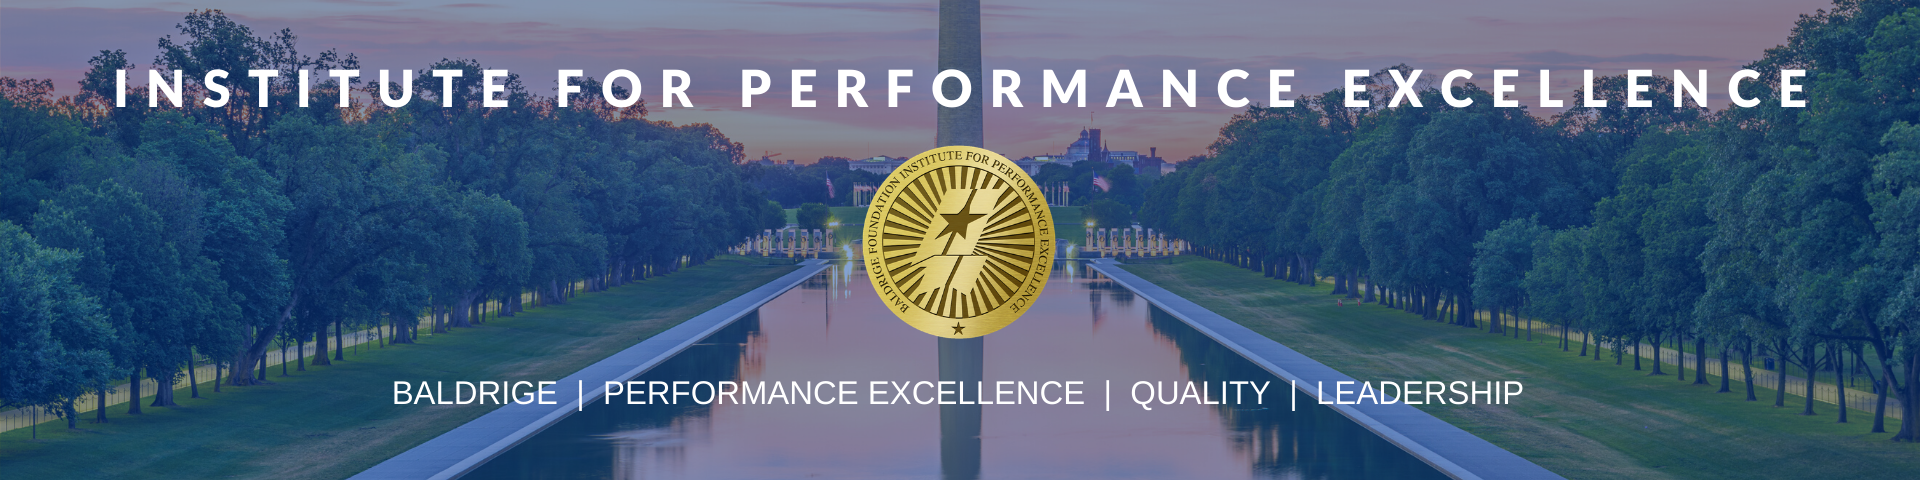 Institute for Performance Excellence